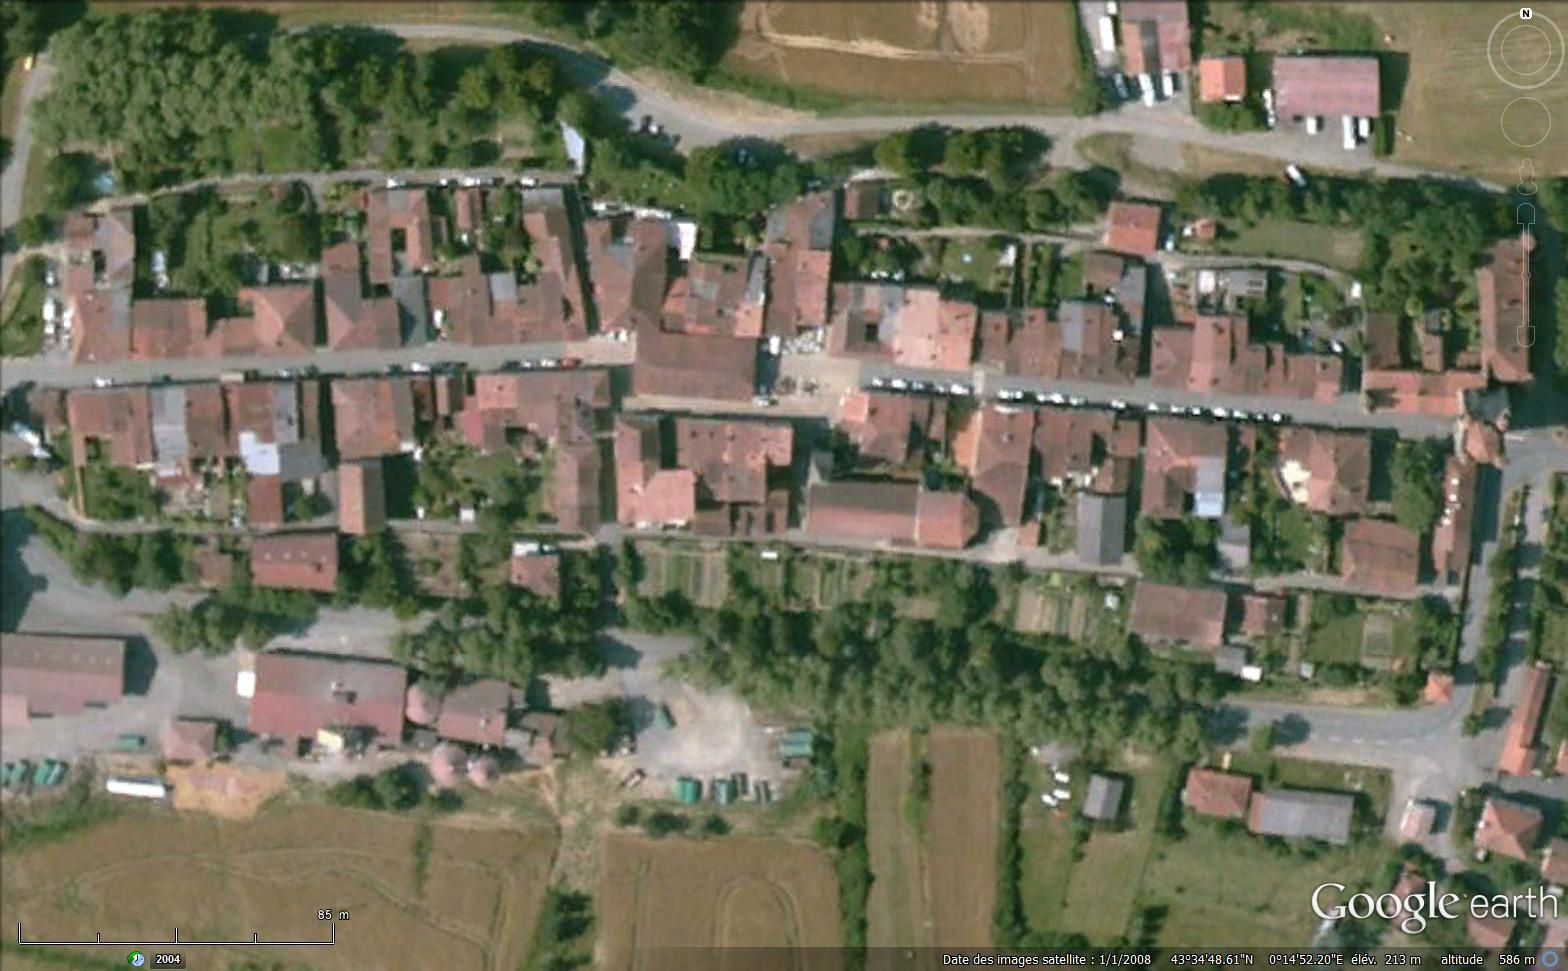 Bassoues sur Google earth